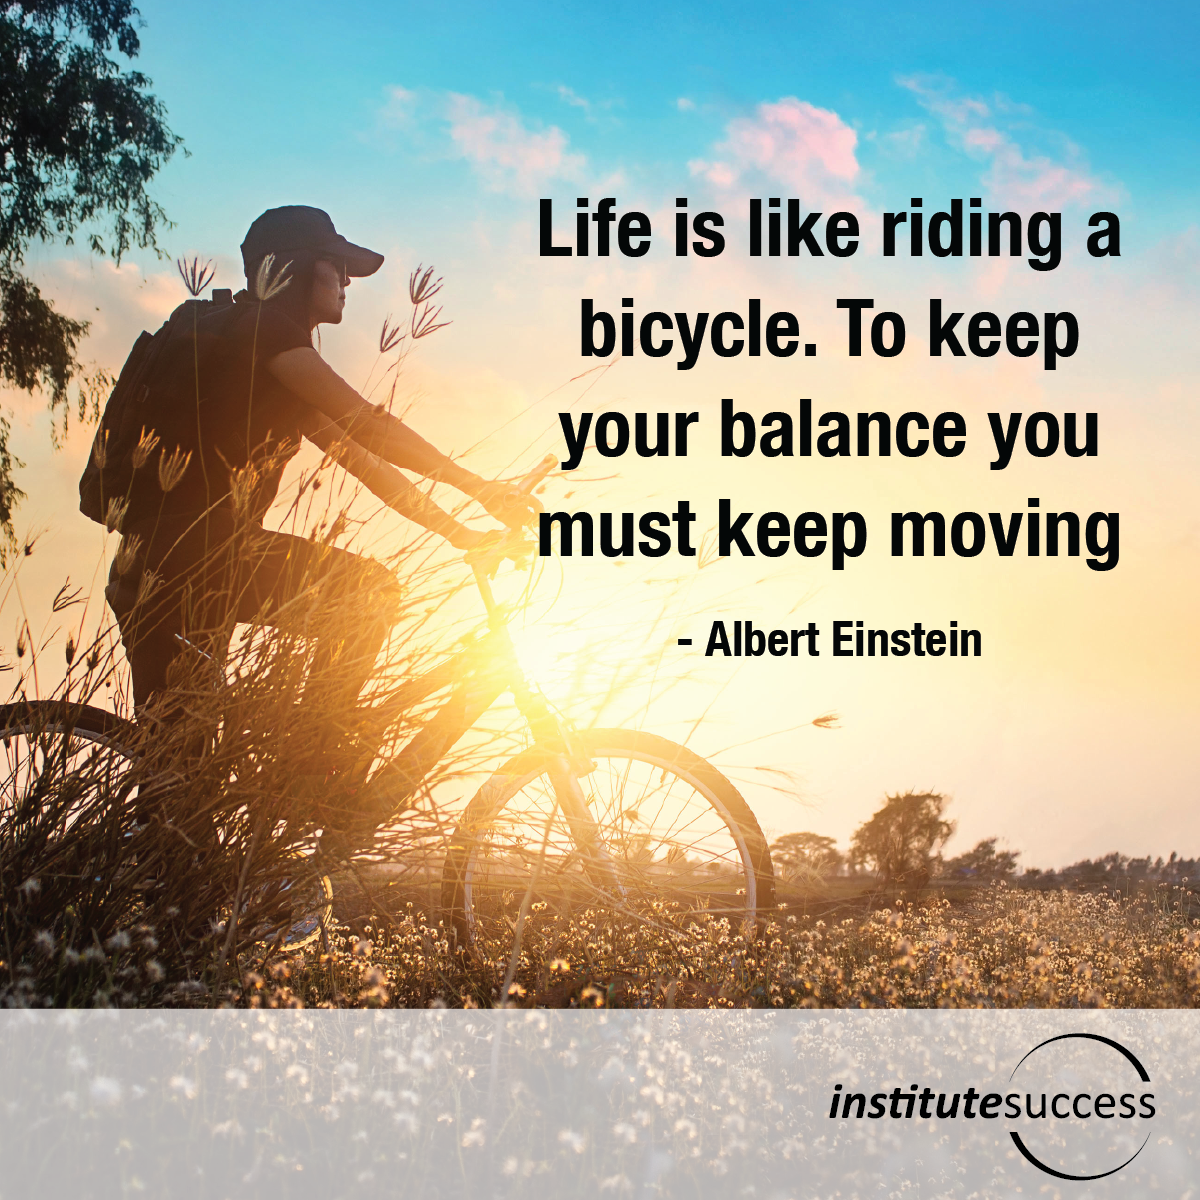 Life is like riding a bicycle. To keep your balance you must keep moving – Albert Einstein